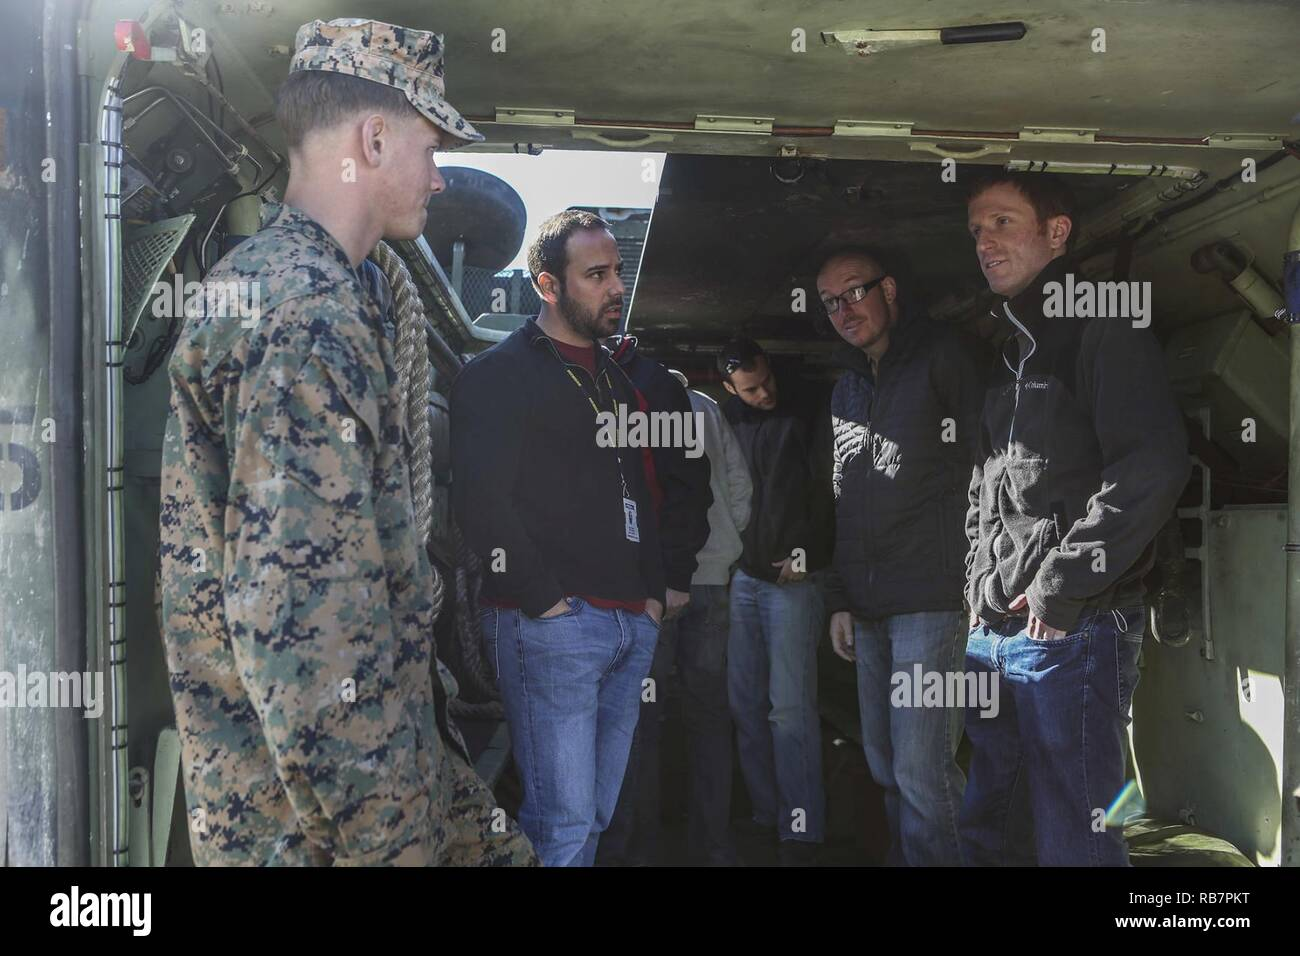 Aav Repair Stock Photos Aav Repair Stock Images Alamy